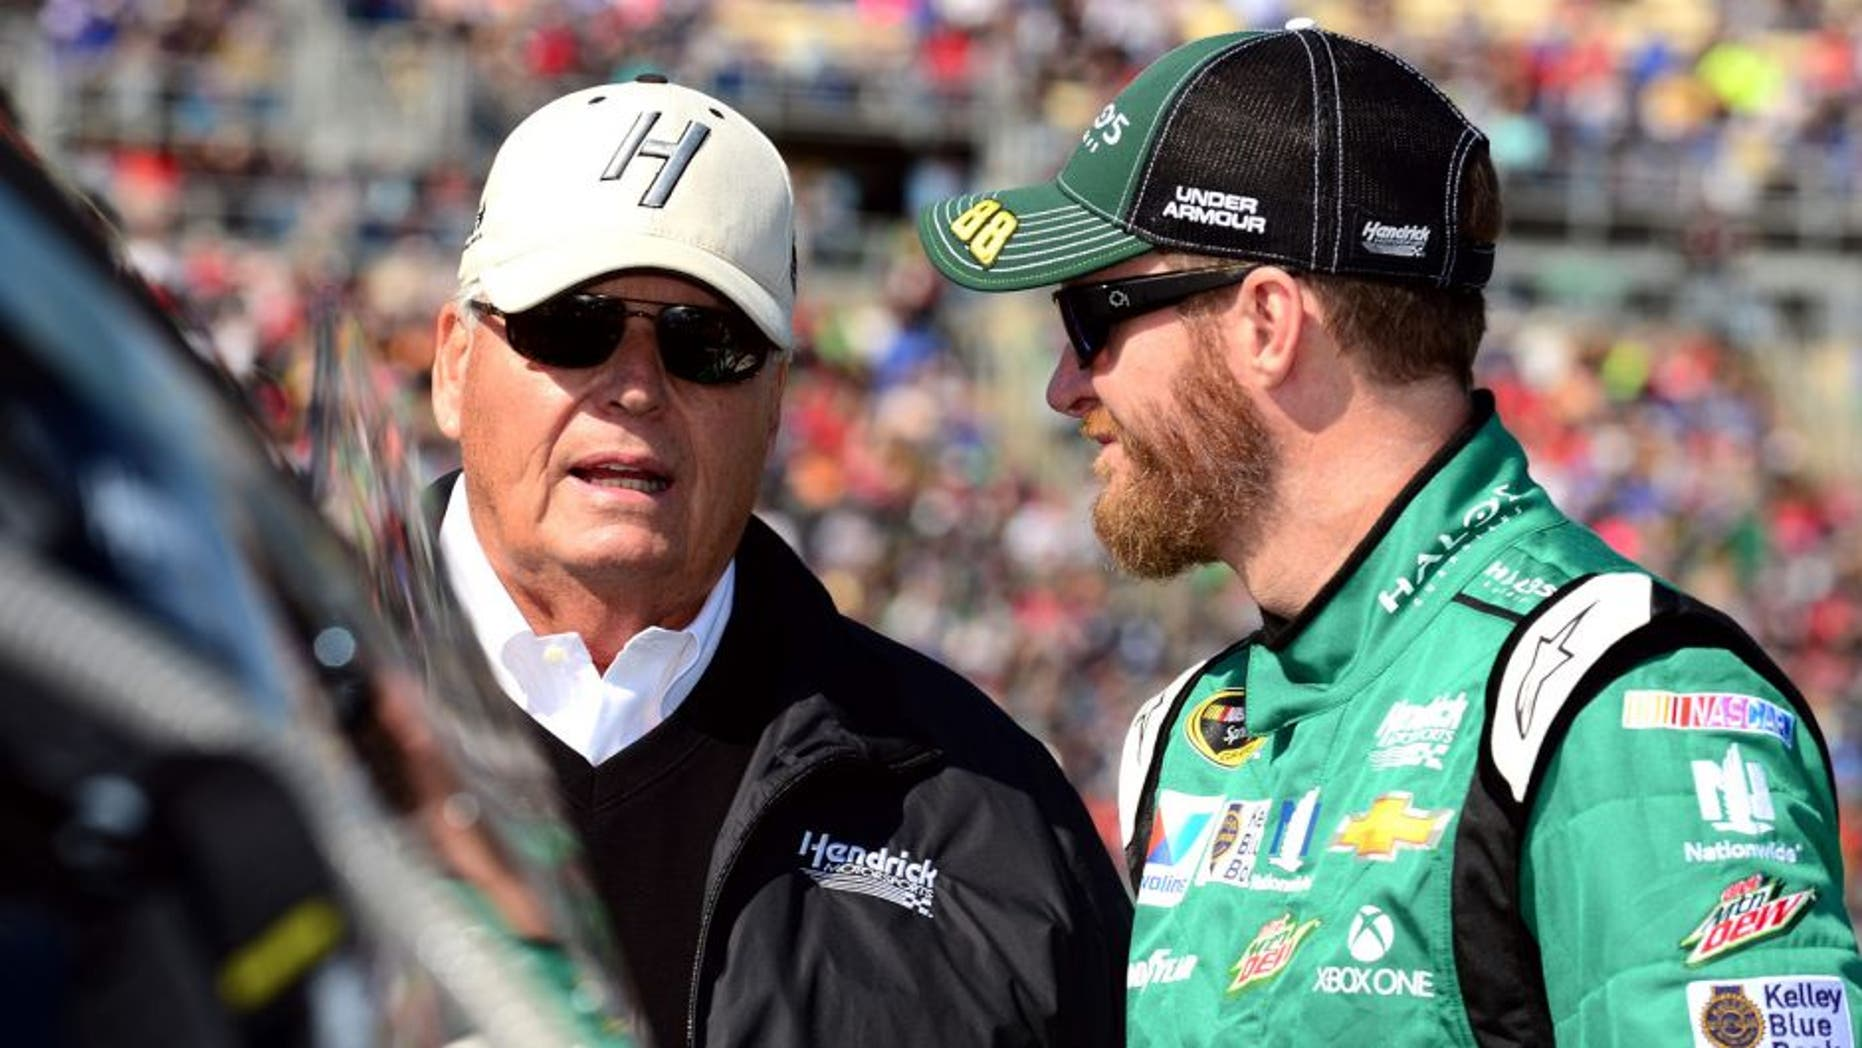 KANSAS CITY, KS - OCTOBER 18: Dale Earnhardt Jr., driver of the #88 Halo 5: Master Chief Chevrolet, talks with Rick Hendrick, owner of Hendrick Motorsports, on the grid prior to the NASCAR Sprint Cup Series Hollywood Casino 400 at Kansas Speedway on October 18, 2015 in Kansas City, Kansas. (Photo by Jeff Curry/Getty Images)